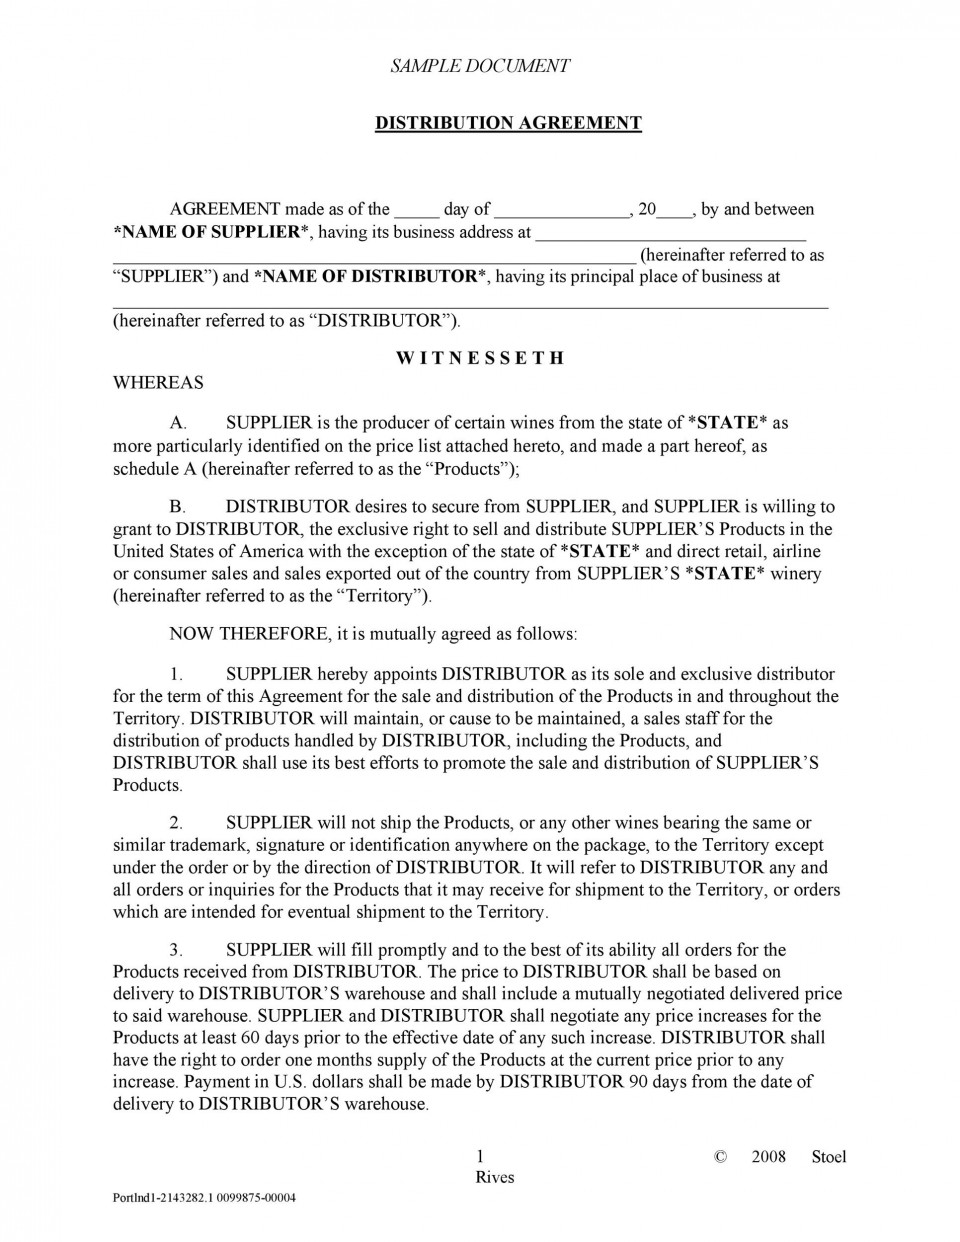 002 Wondrou Exclusive Distribution Contract Template Example  Agreement Australia Uk Non Free960